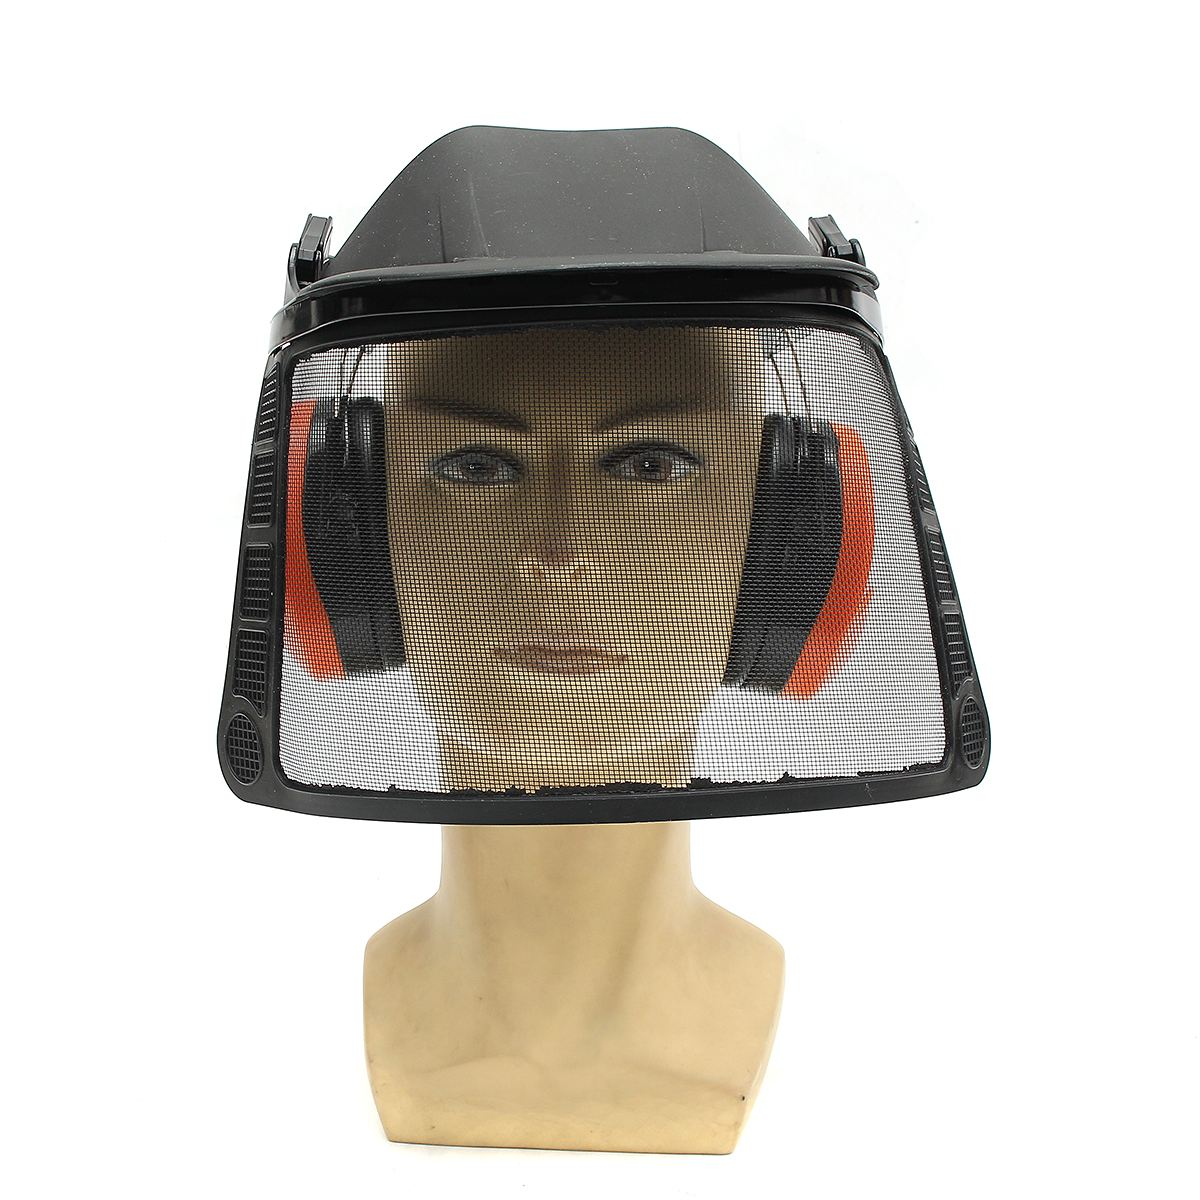 NEW Chainsaw Brushcutter Safety Mask Helmet Hat Protective Ear Muff Mesh Visor Mask Set  Workplace Safety<br>